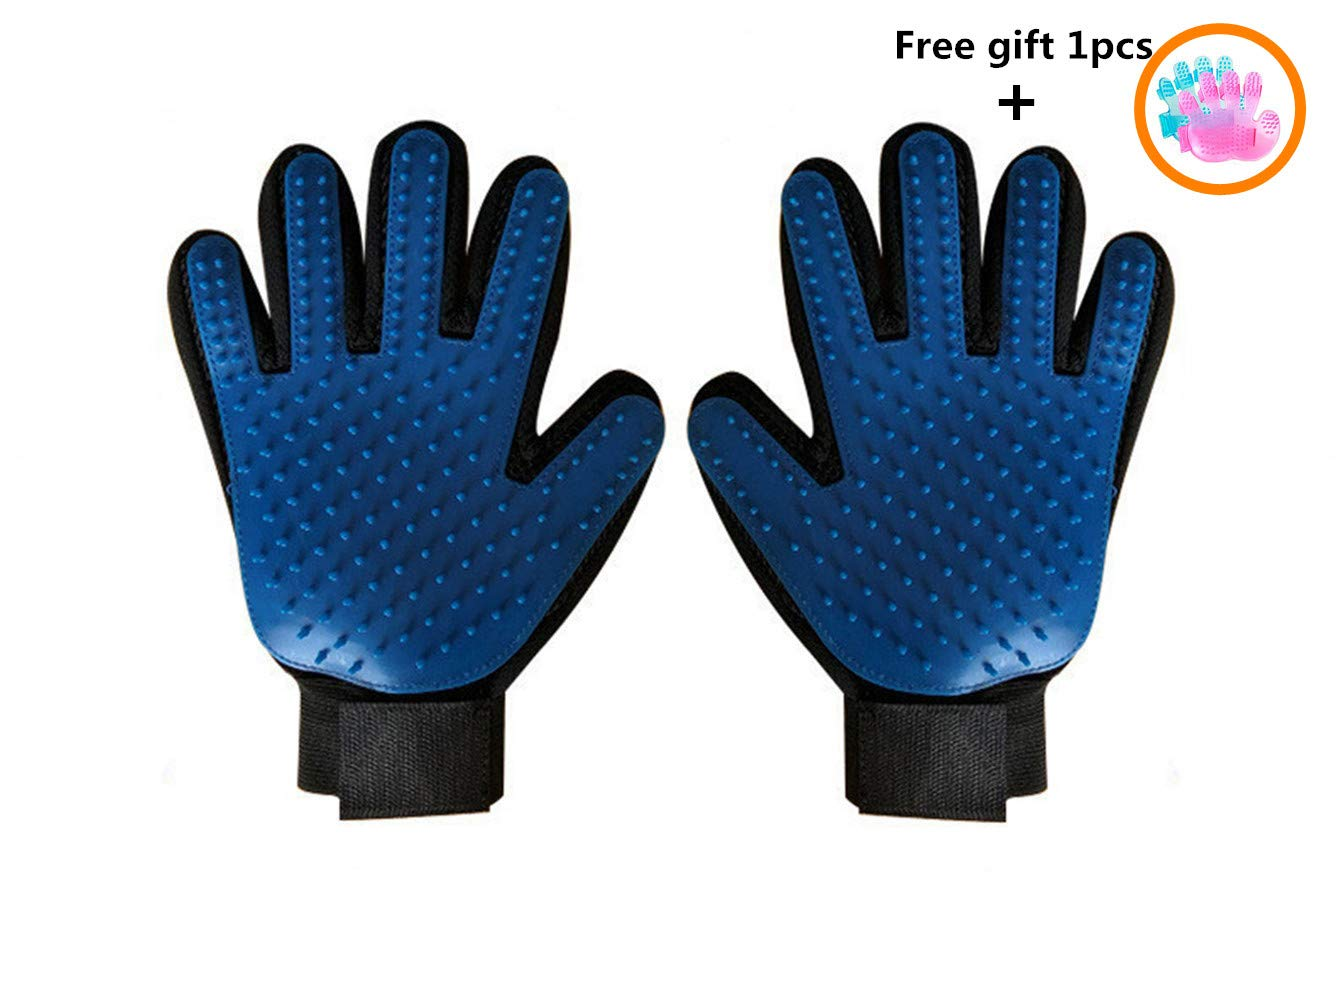 Kirsches Pet Grooming Glove Hair Remover Brush for Long&Short Fur Gentle Shedding Massage Tool Dog/Cat/Horse One Pair